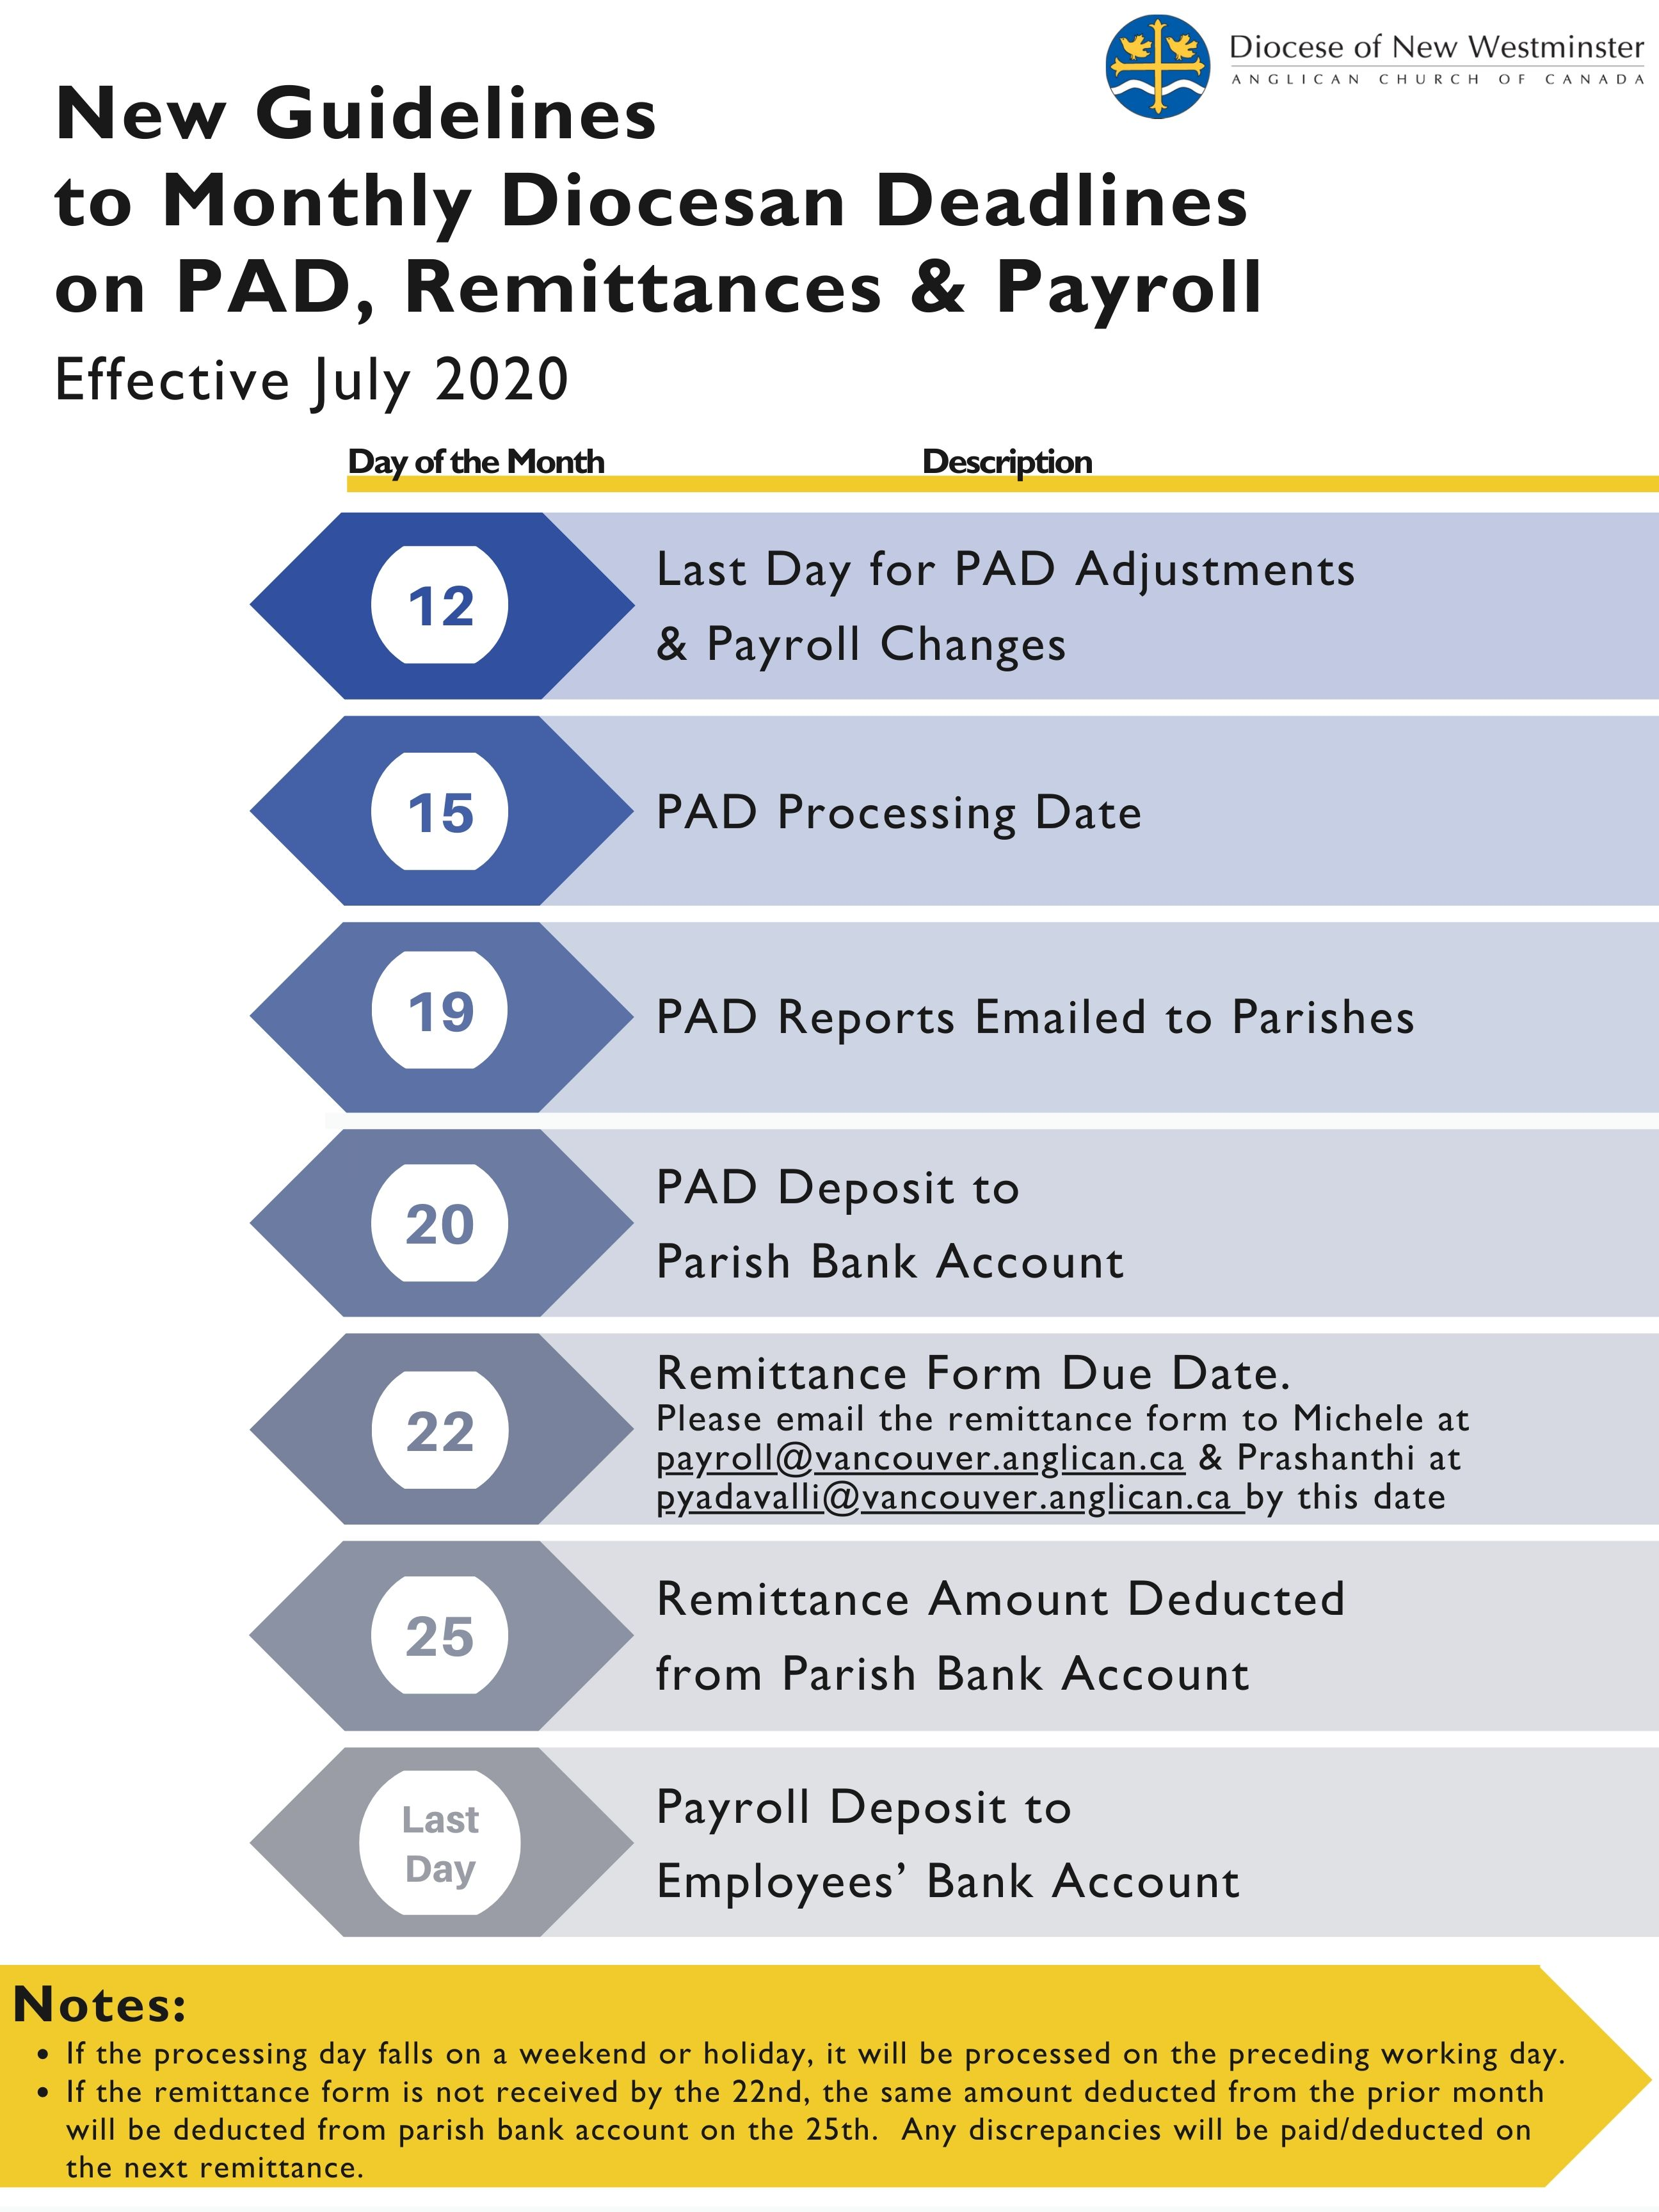 Payroll And Benefits Forms And Links For Clergy And Lay